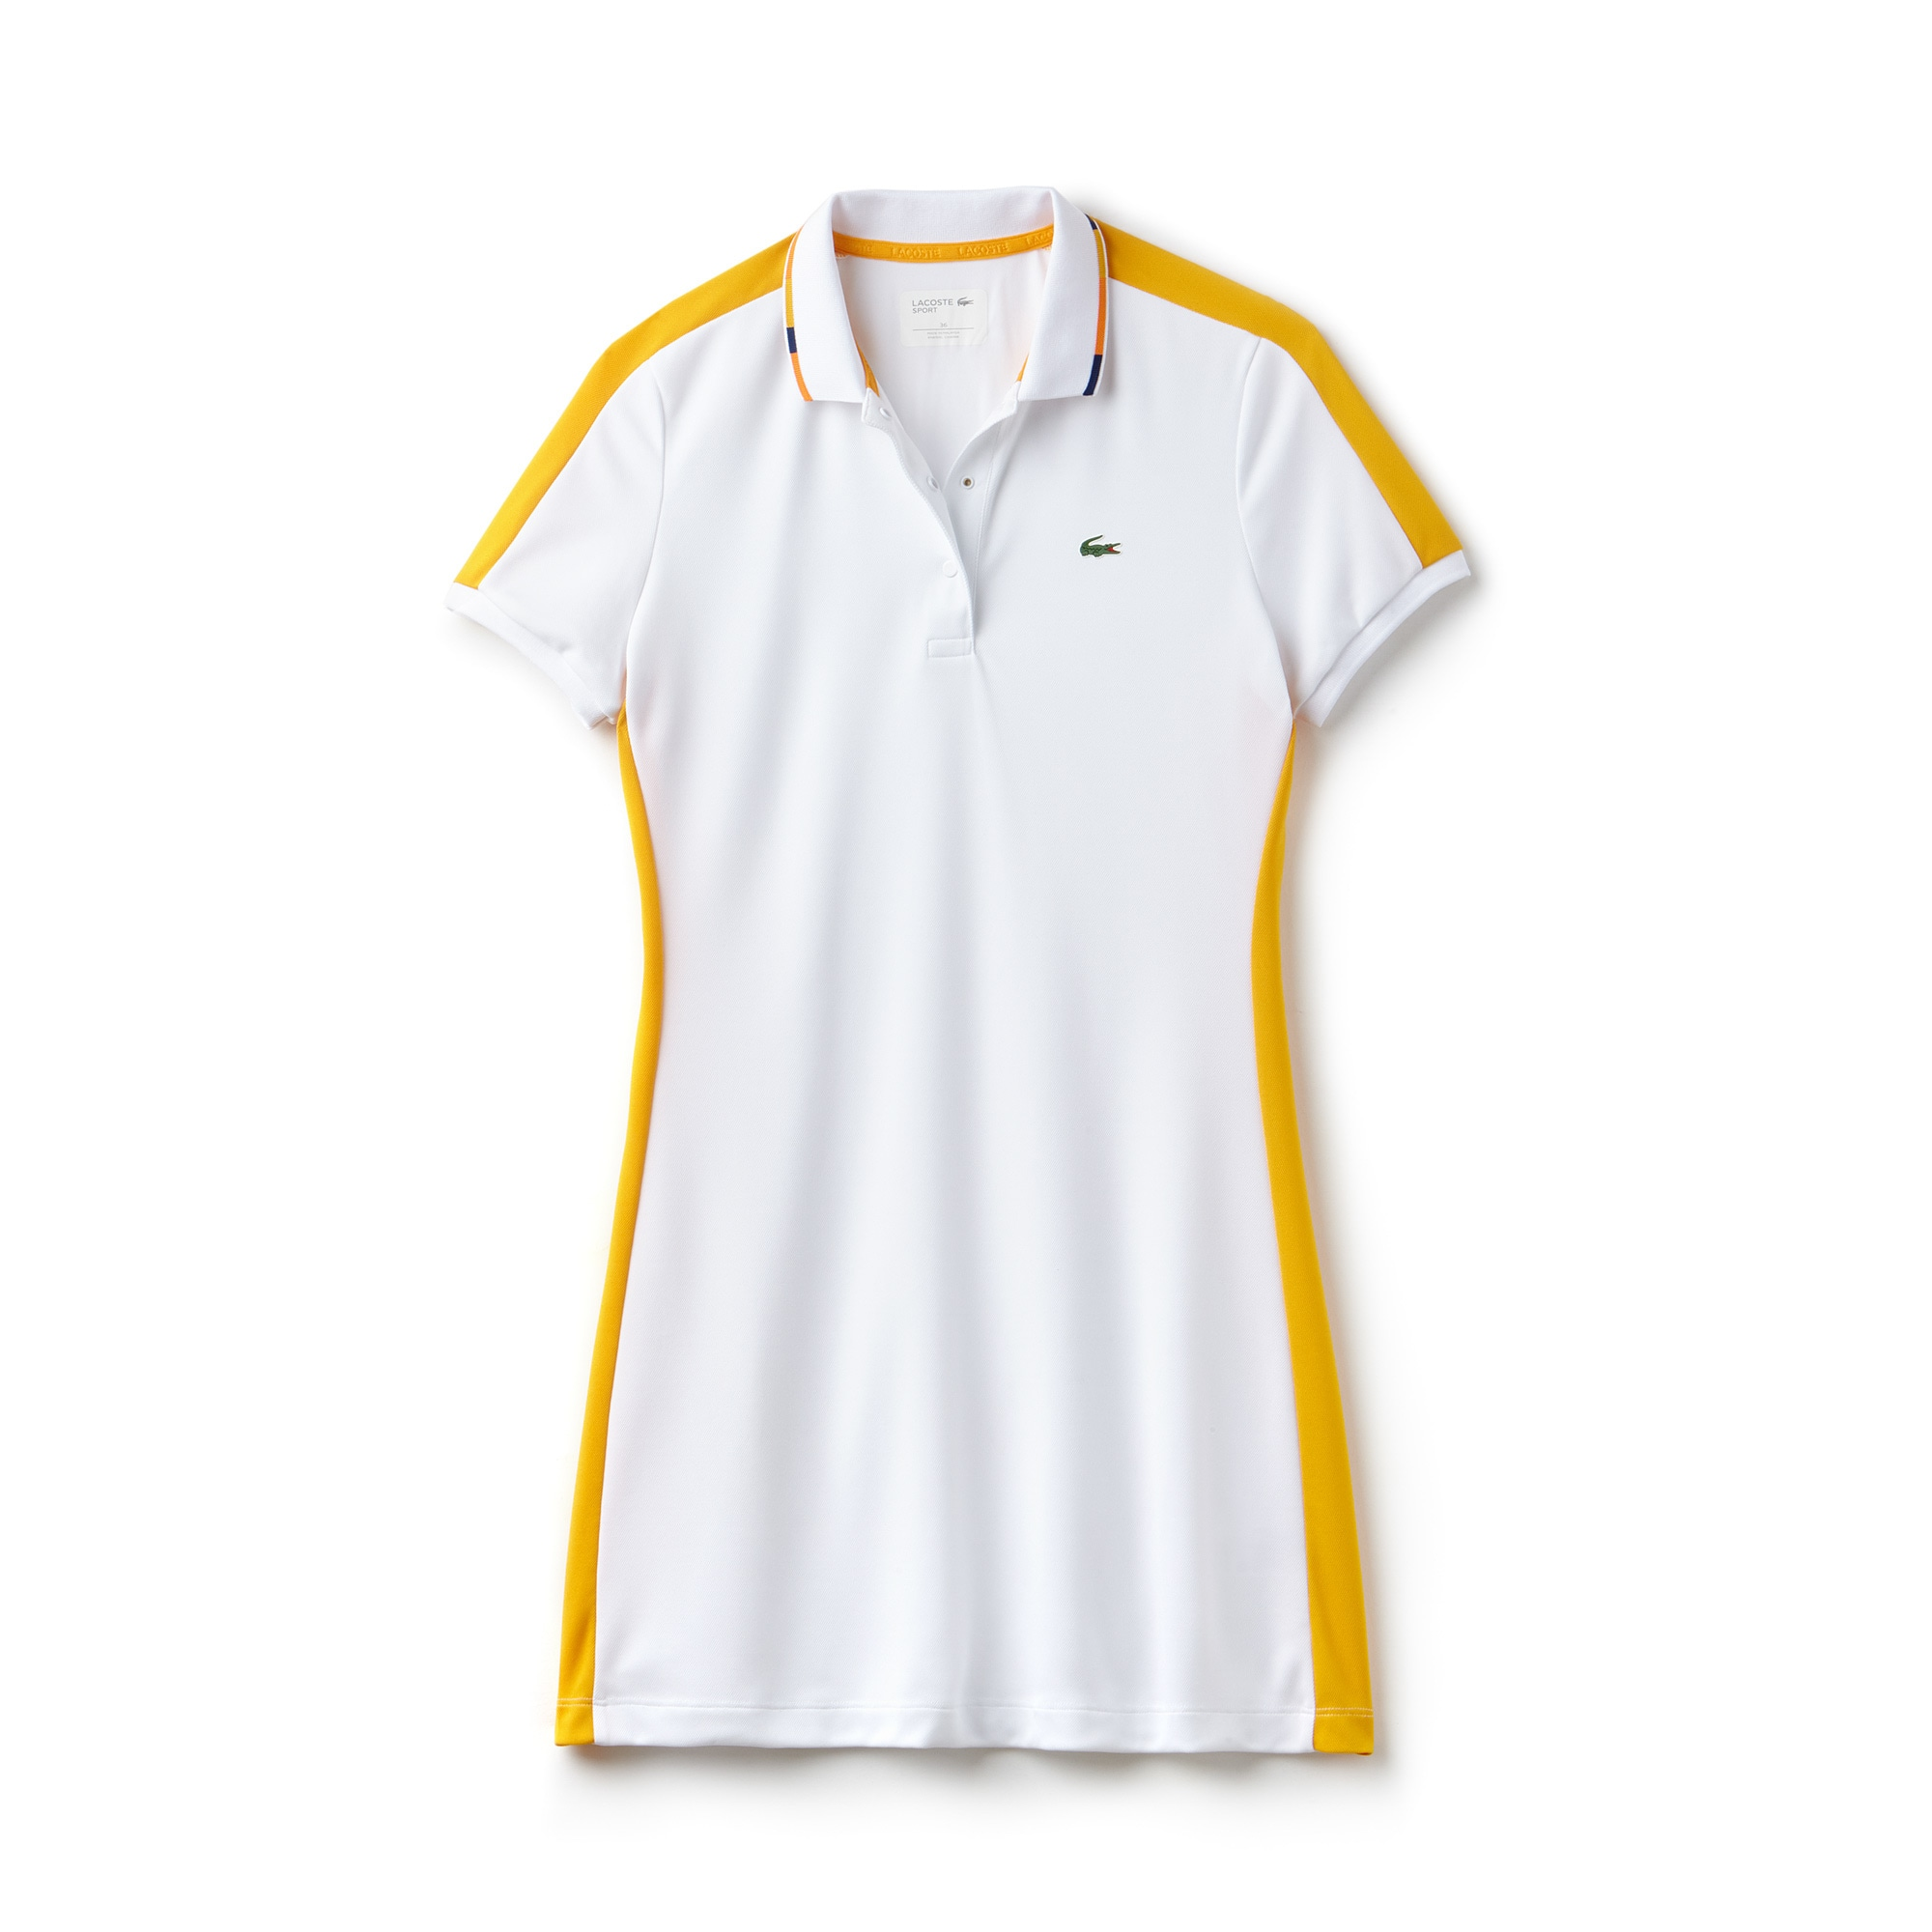 Women's SPORT Contrast Bands Tech Piqué Tennis Polo Dress